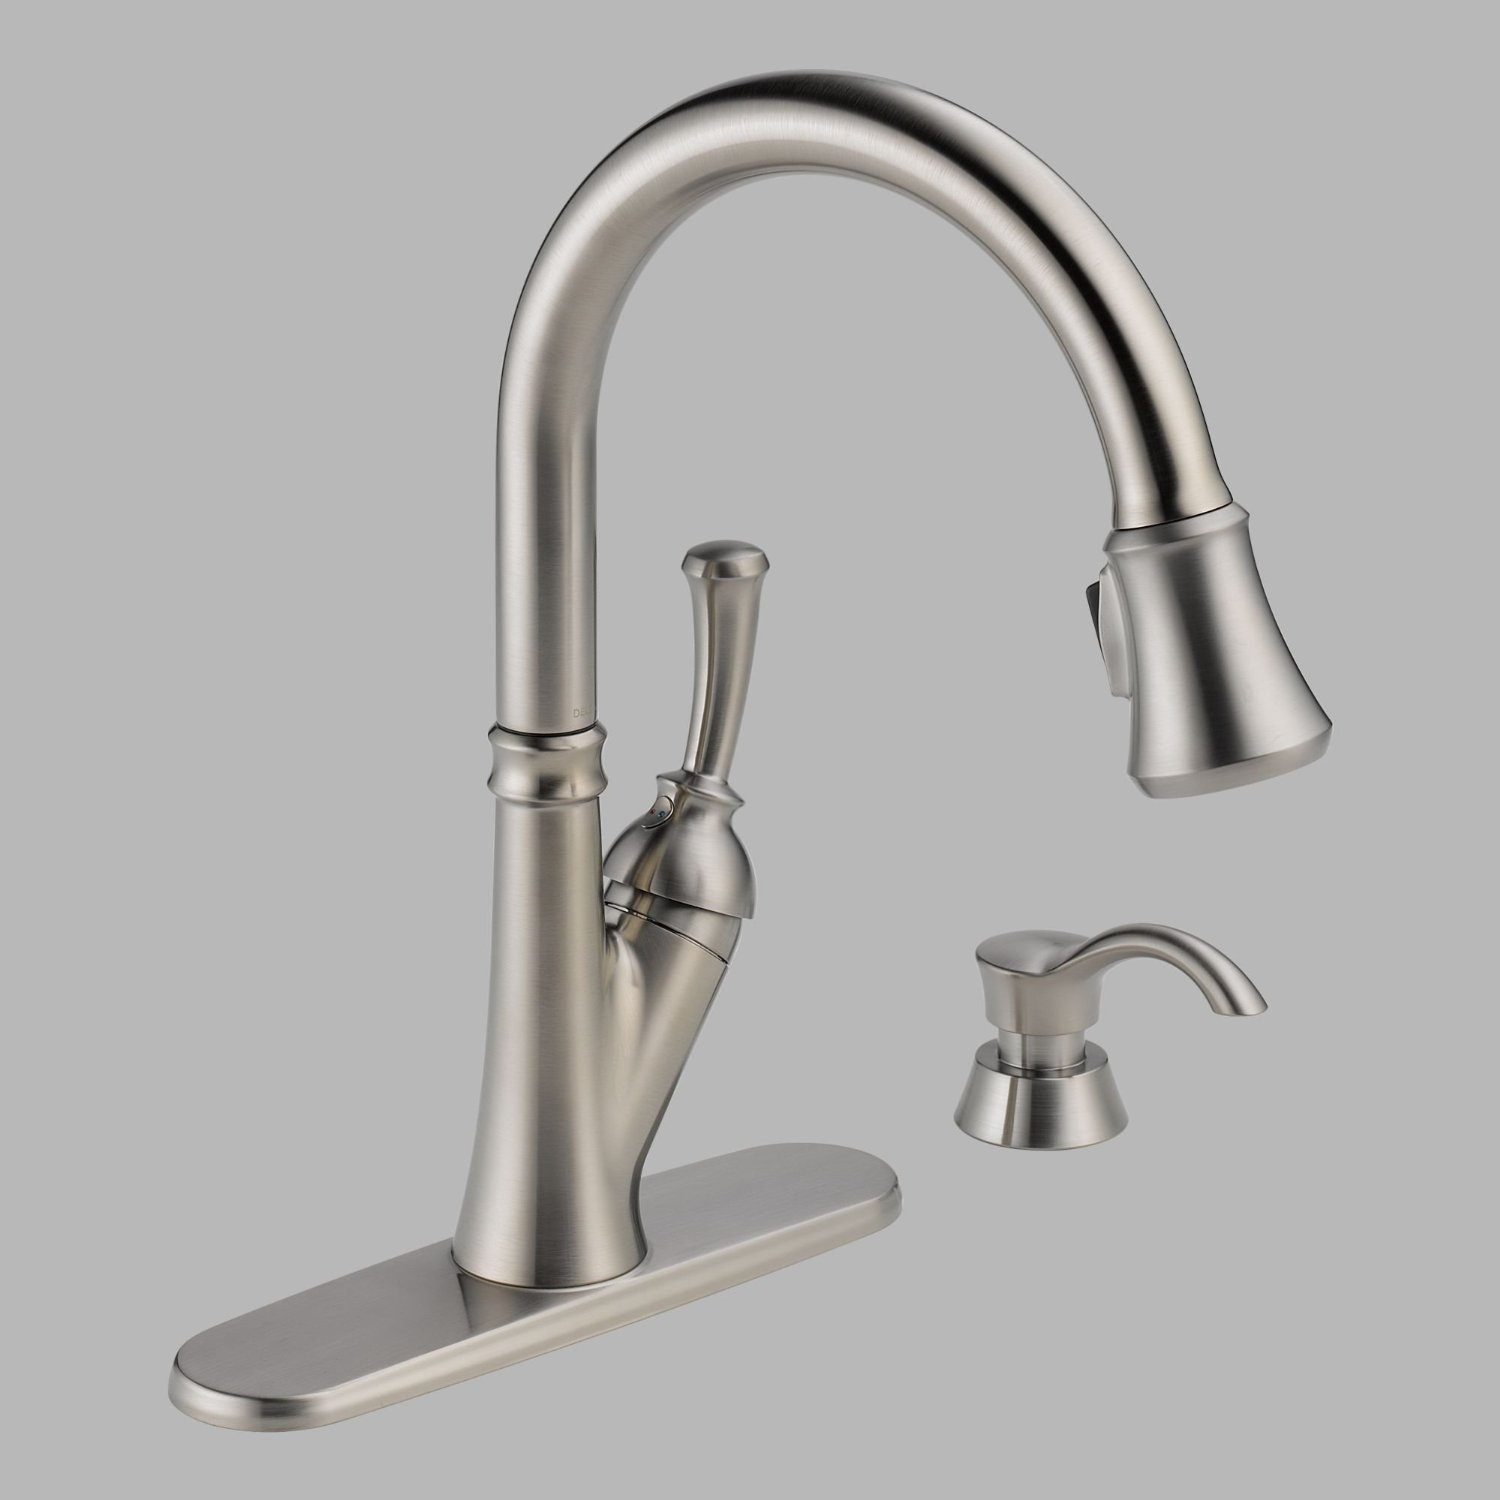 Ideas, changing a delta kitchen faucet changing a delta kitchen faucet delta kitchen sink faucets changing ways kitchen design ideas 1500 x 1500  .